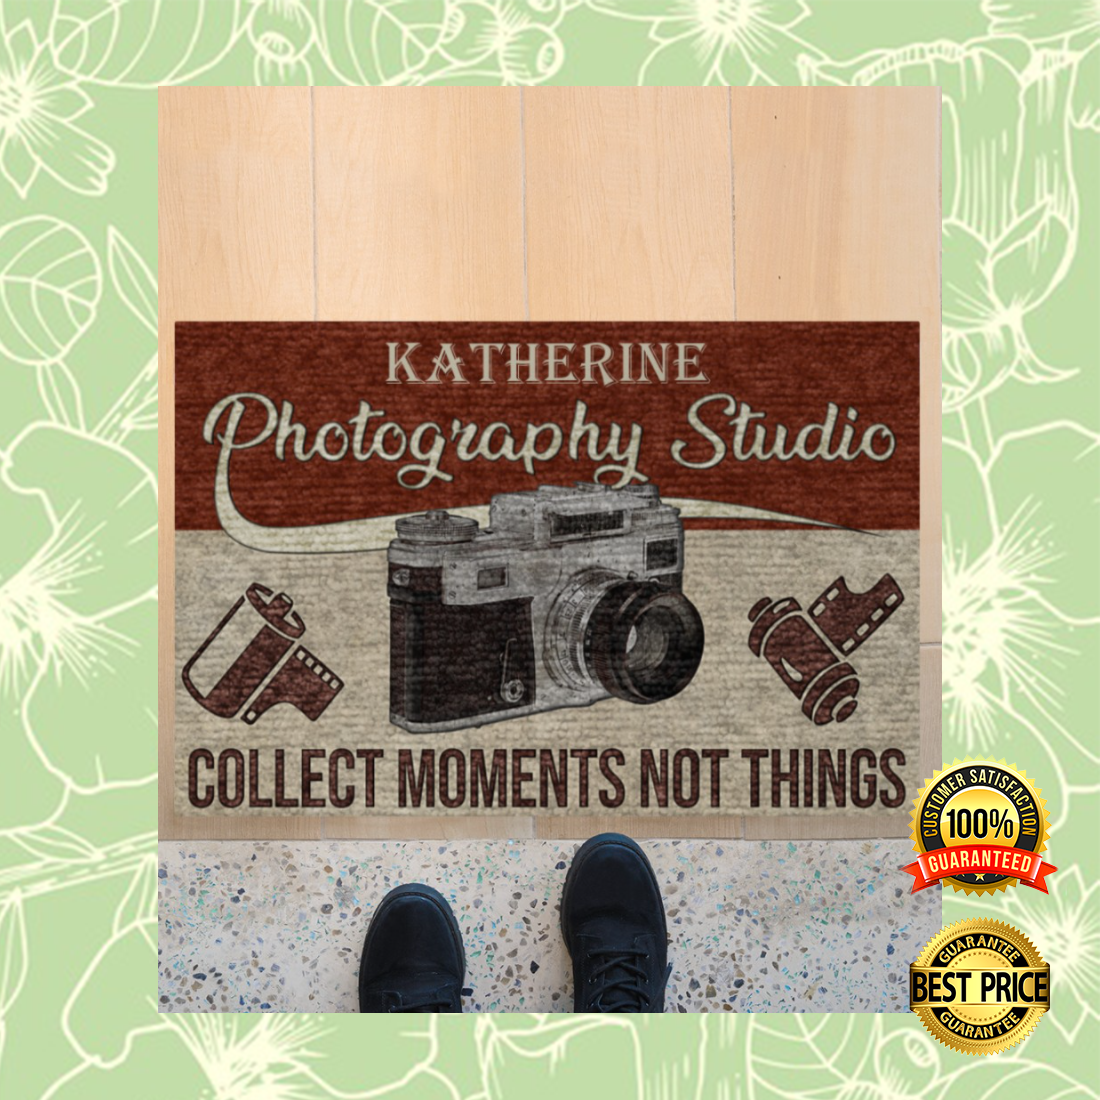 Personalized photography studio collect moments not things doormat 5